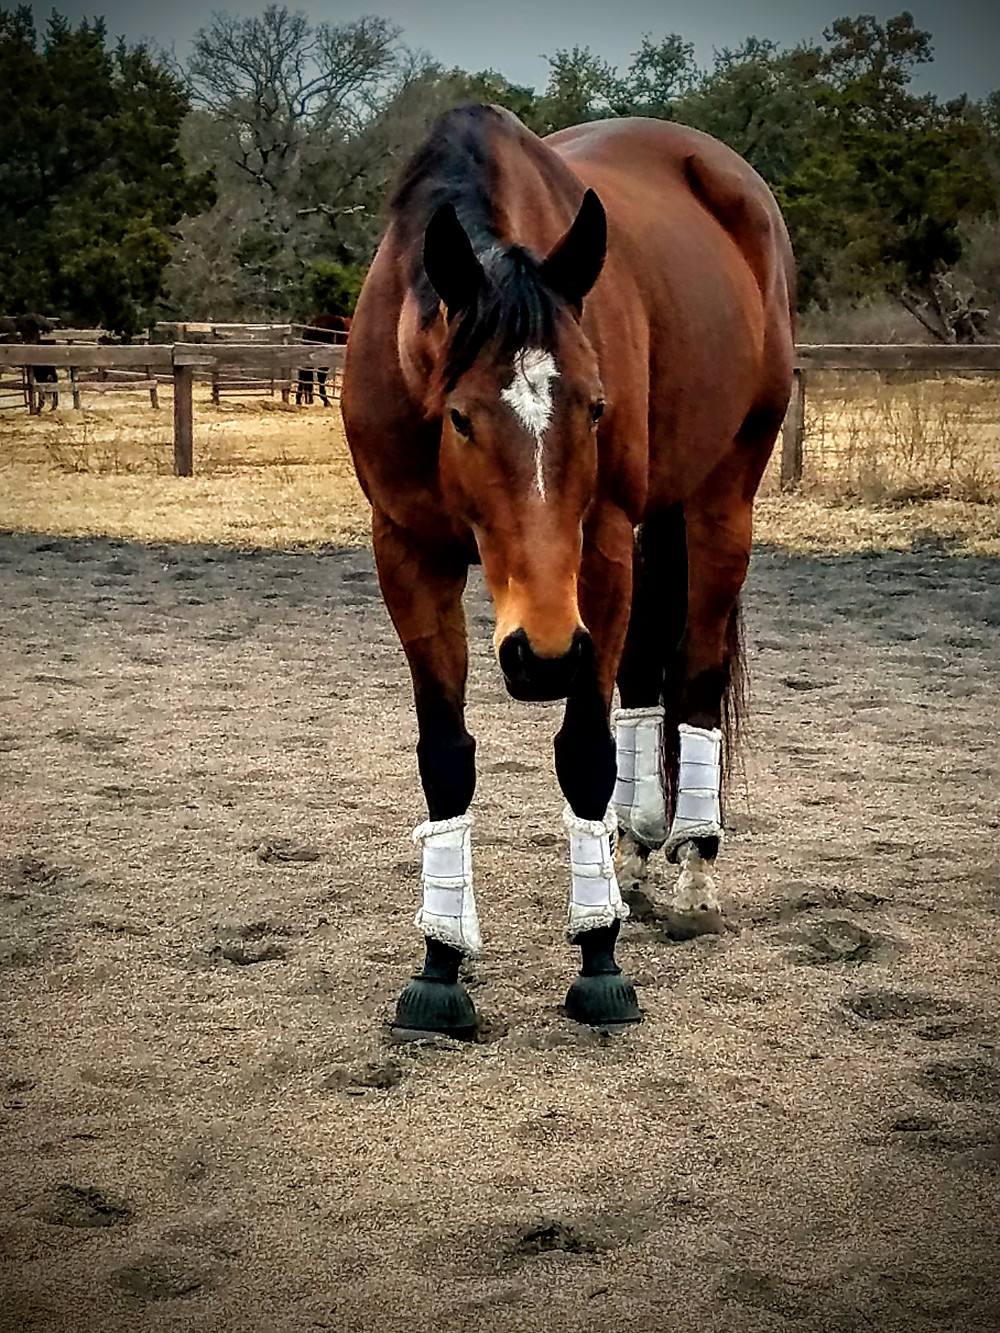 Relaxed and engaged horse